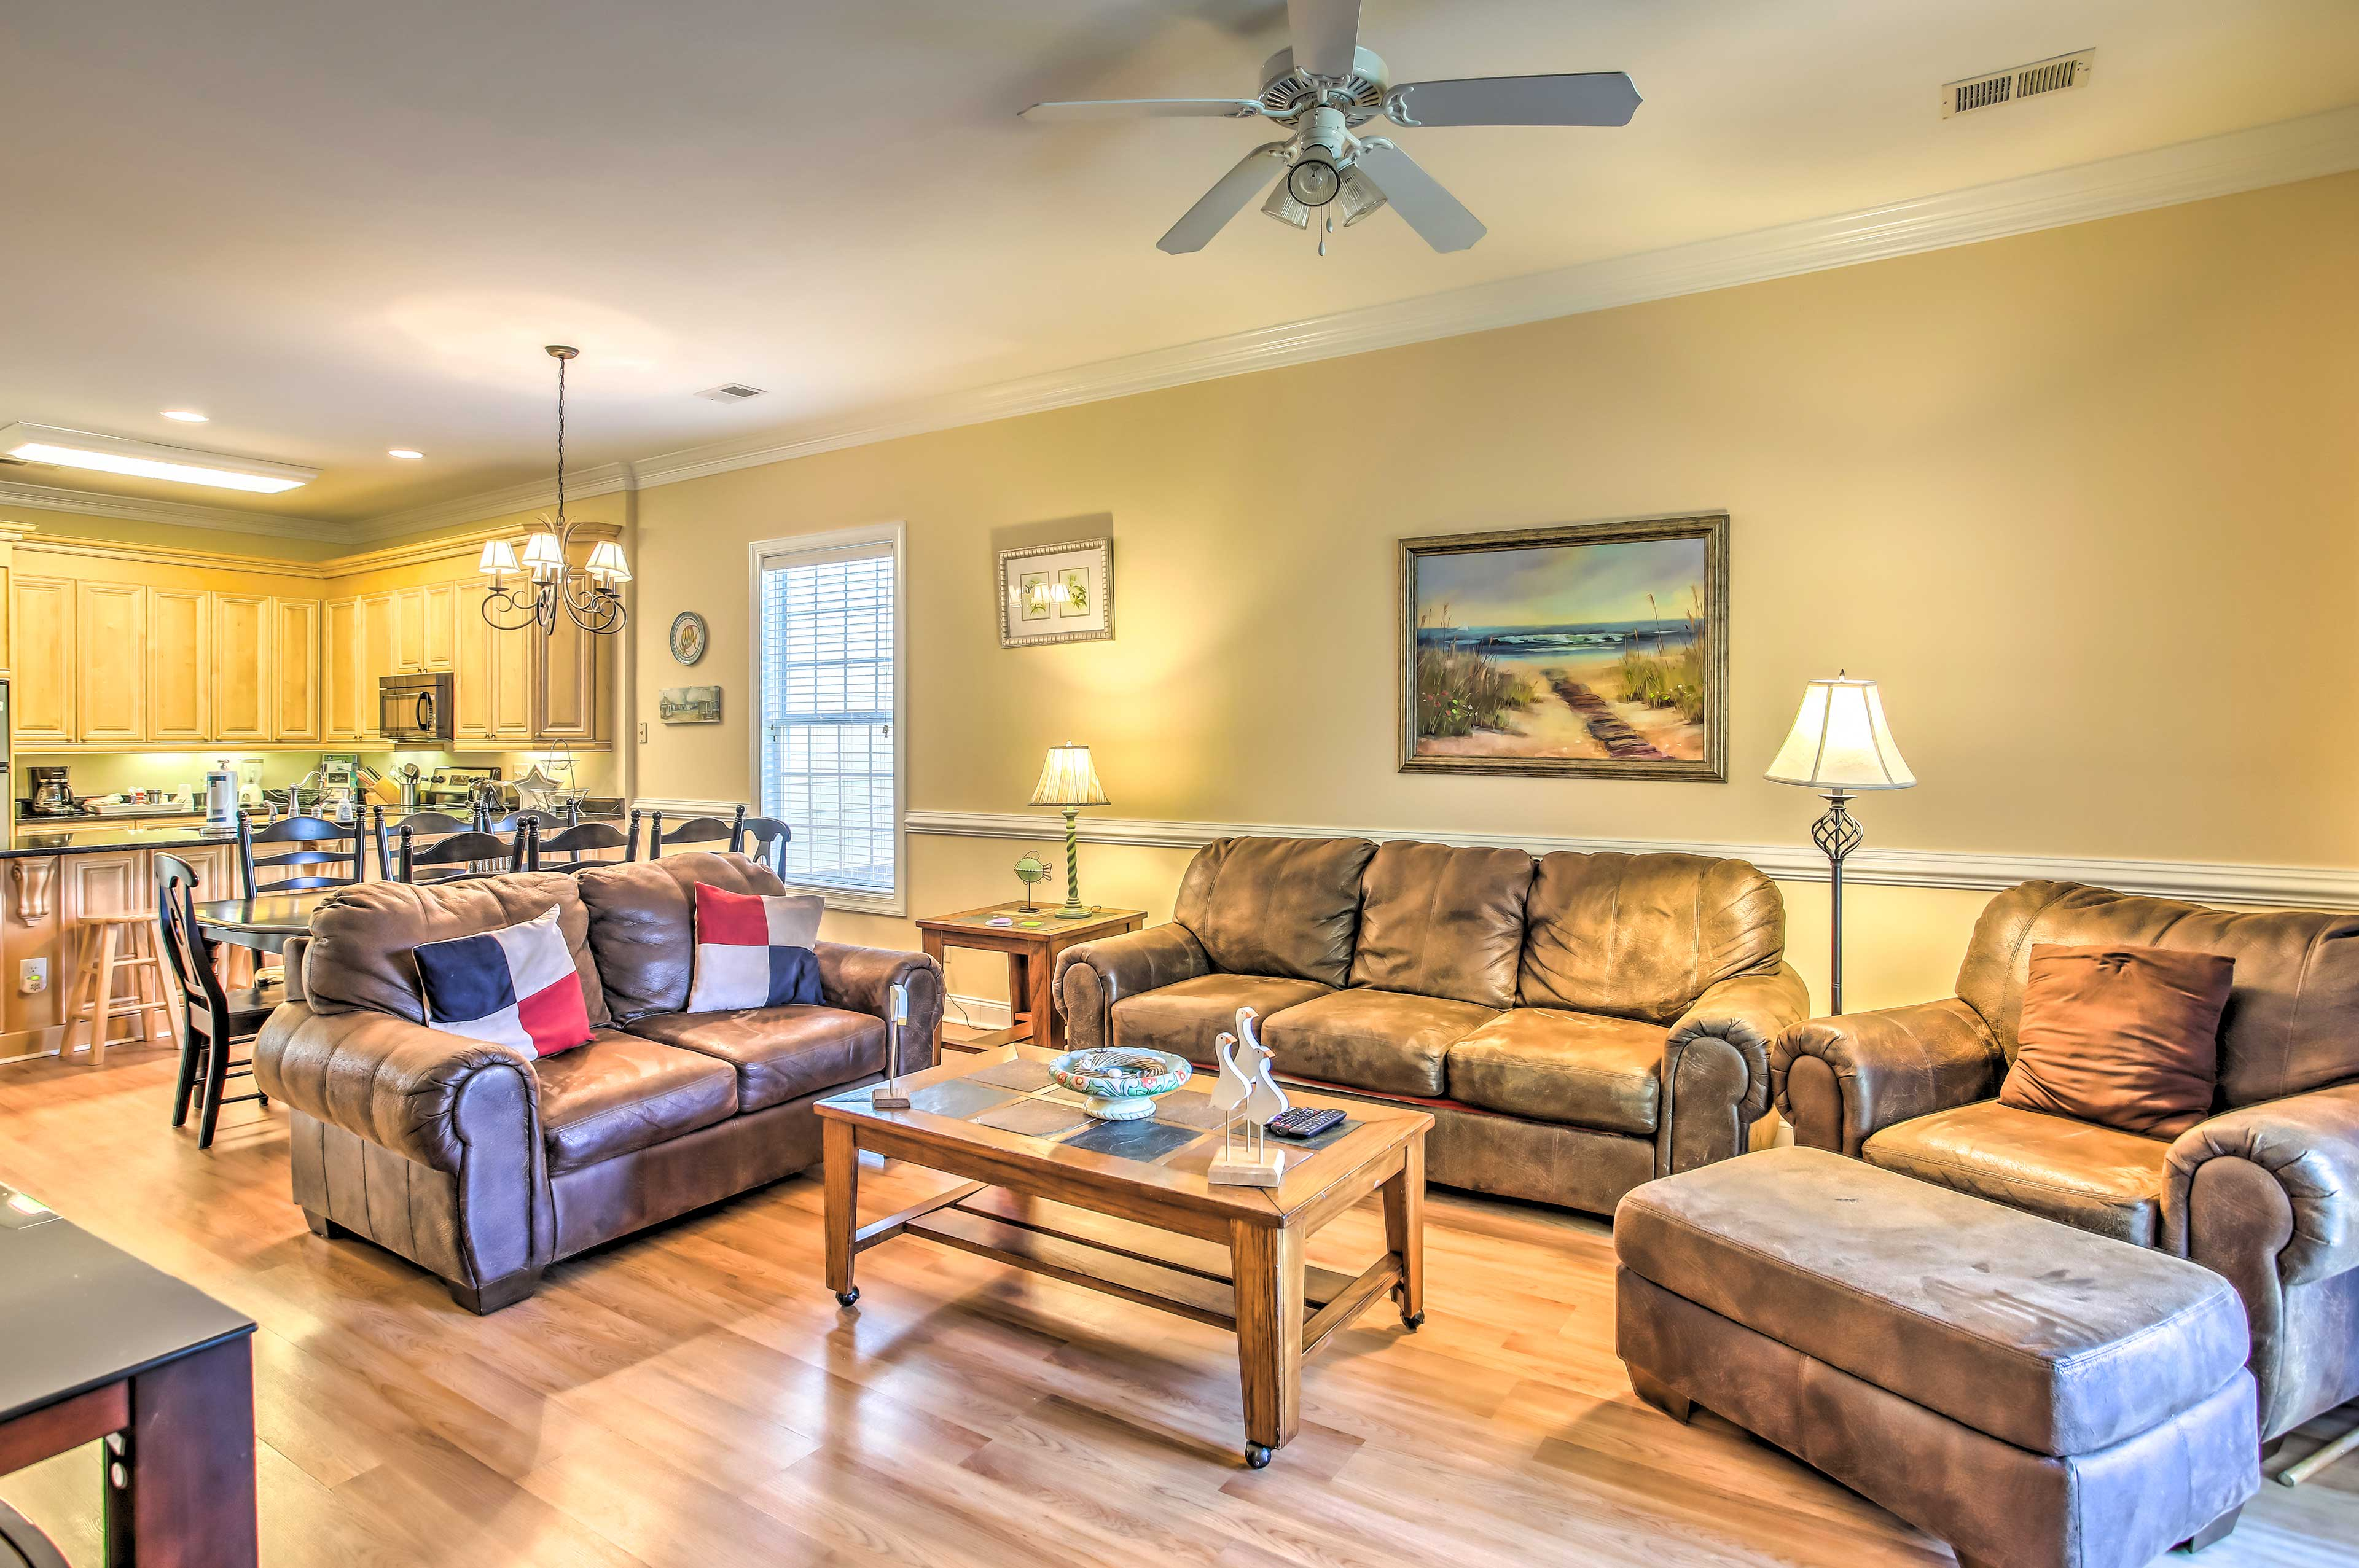 There's plenty of room for the group to lounge in the living area.